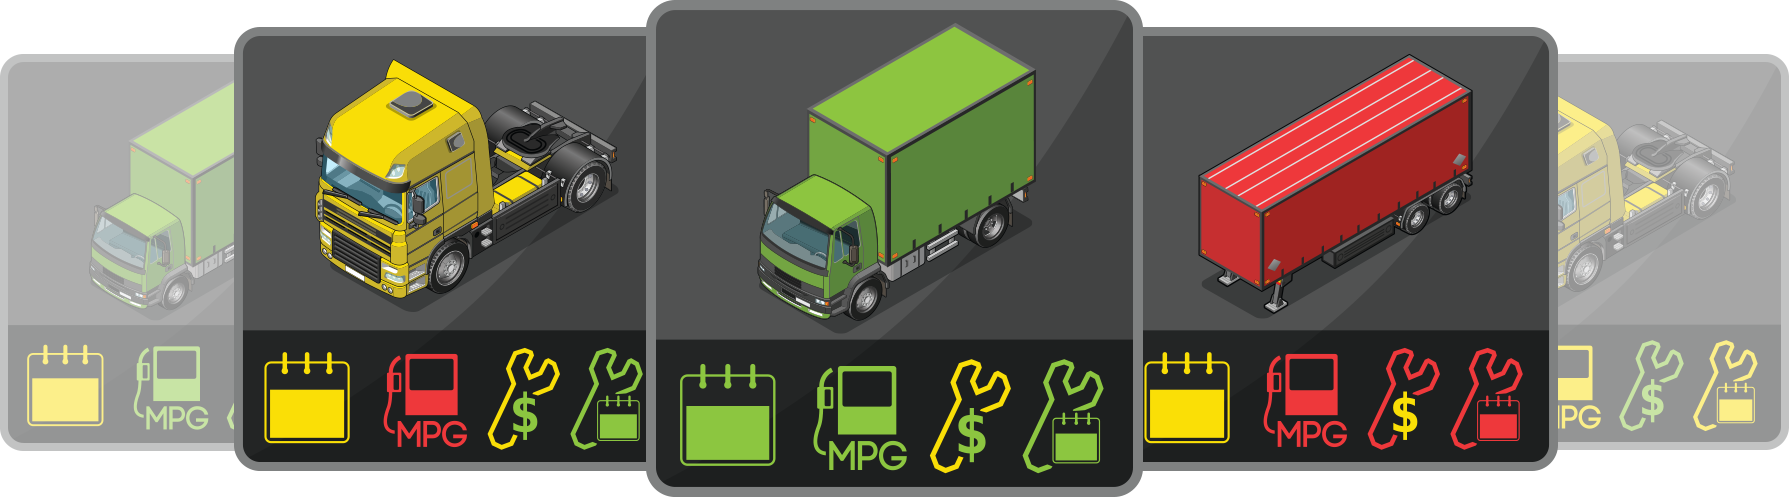 Now everyone can see the big picture | Fleet Management Tiles